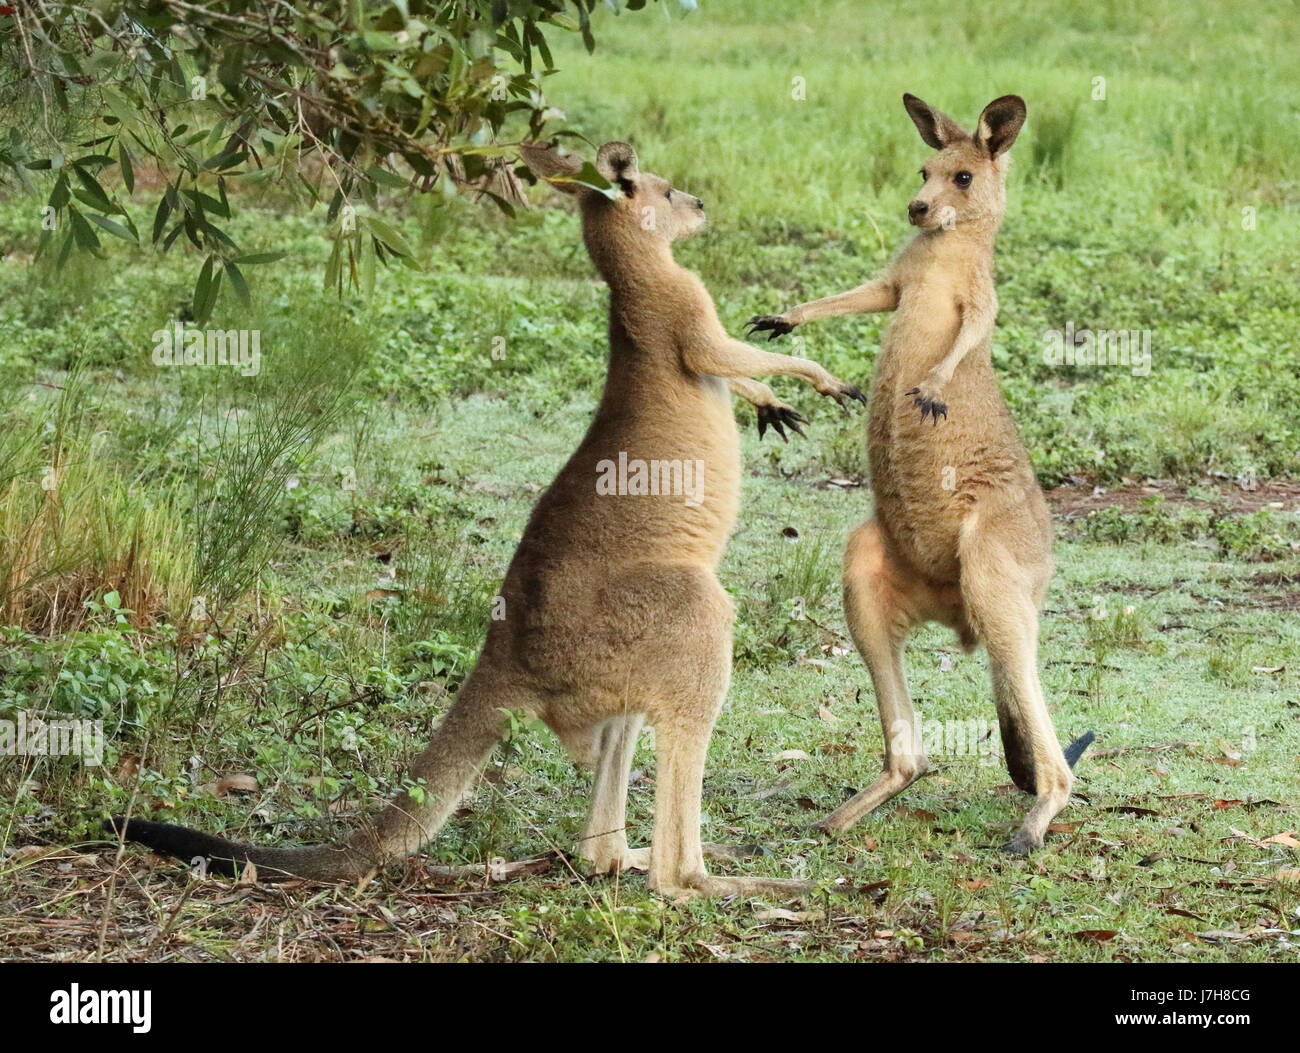 A pair of Eastern Gray Kangaroos fighting and dodging. - Stock Image